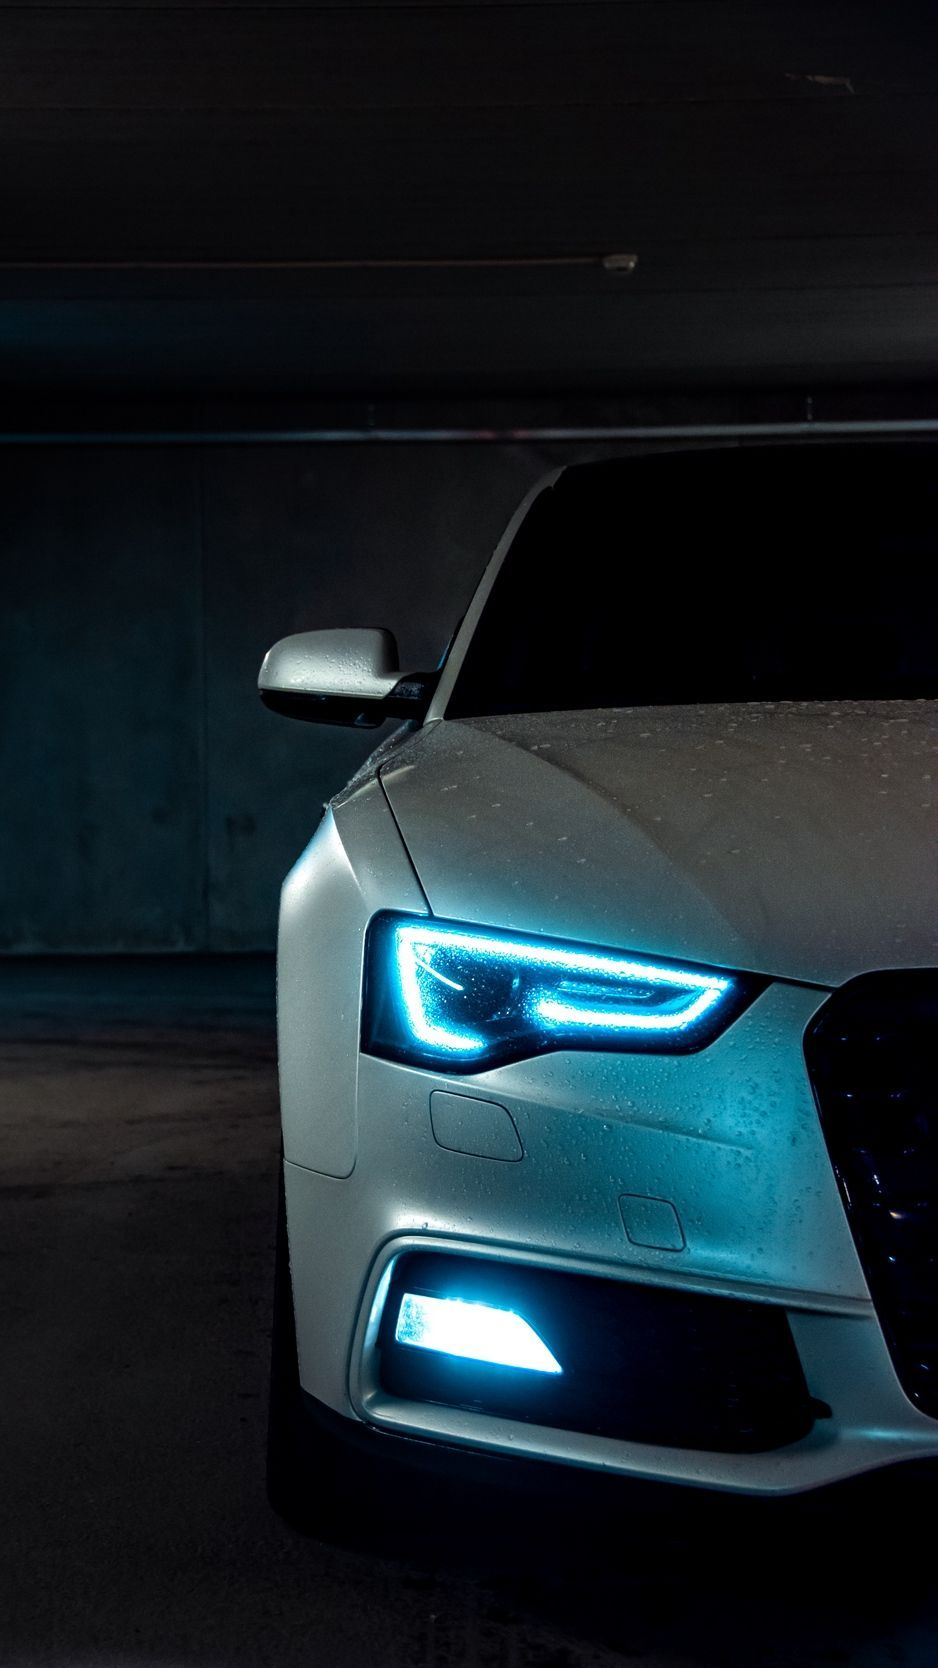 Audi A5 Iphone Wallpapers Top Free Audi A5 Iphone Backgrounds Wallpaperaccess